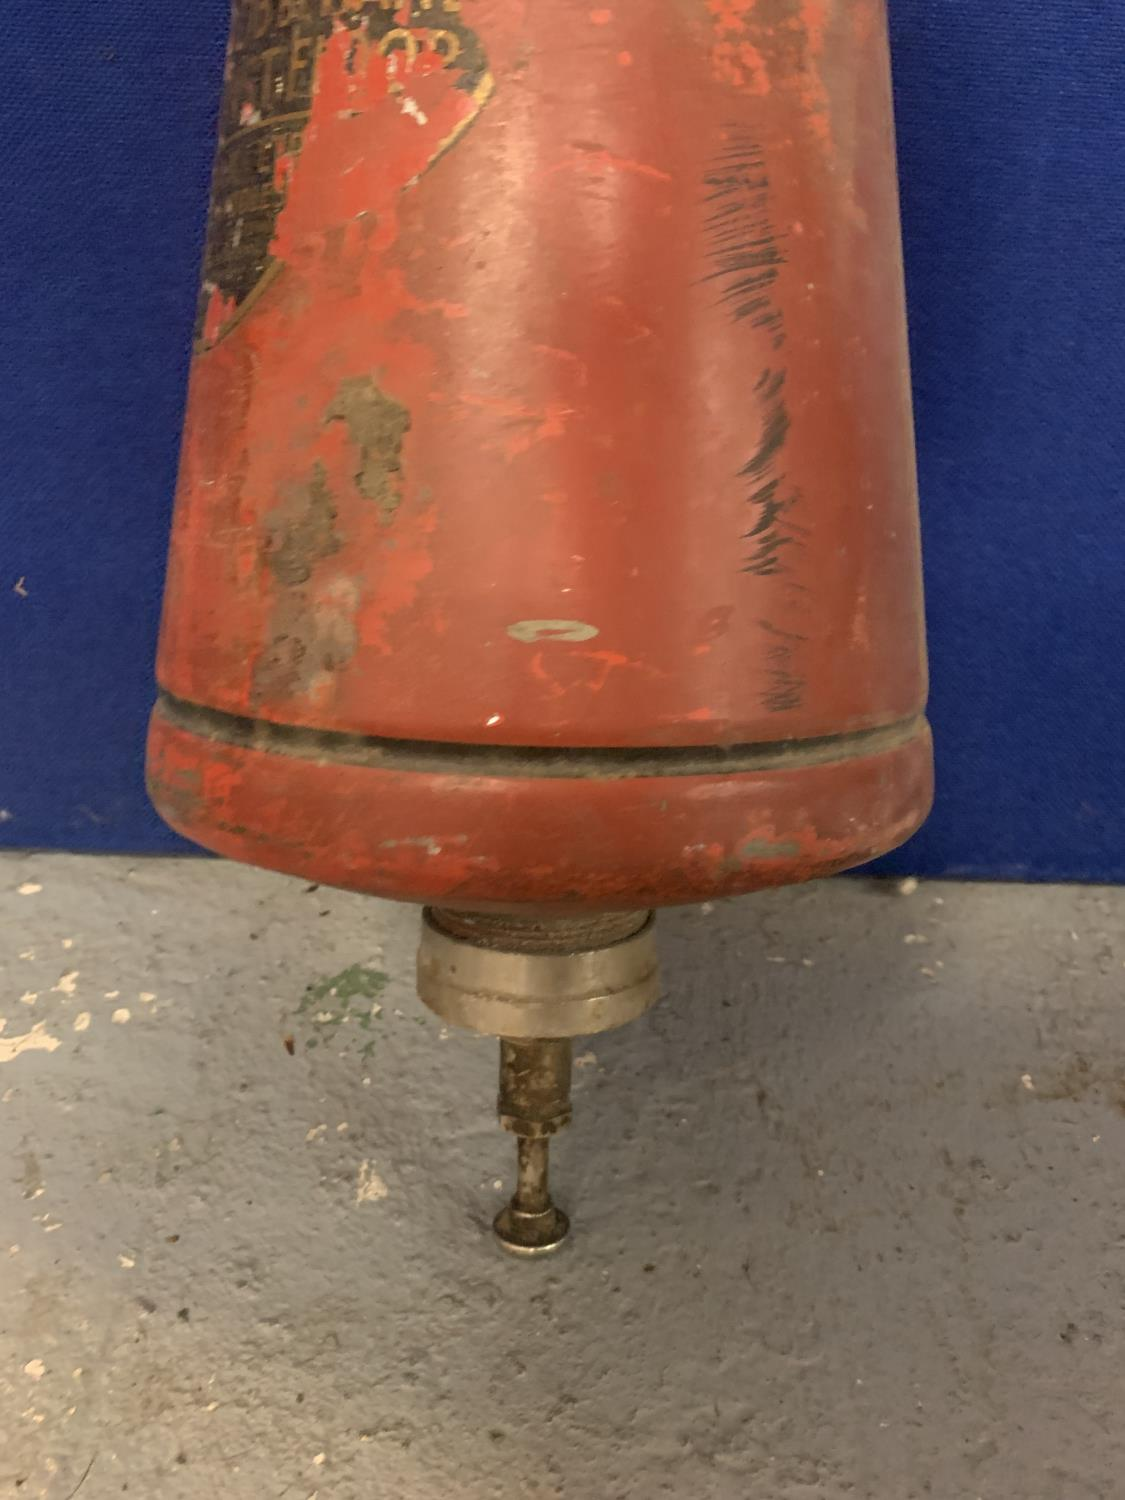 A VINTAGE CONICAL MINIMAX FIRE EXTINGUISHER - Image 4 of 4